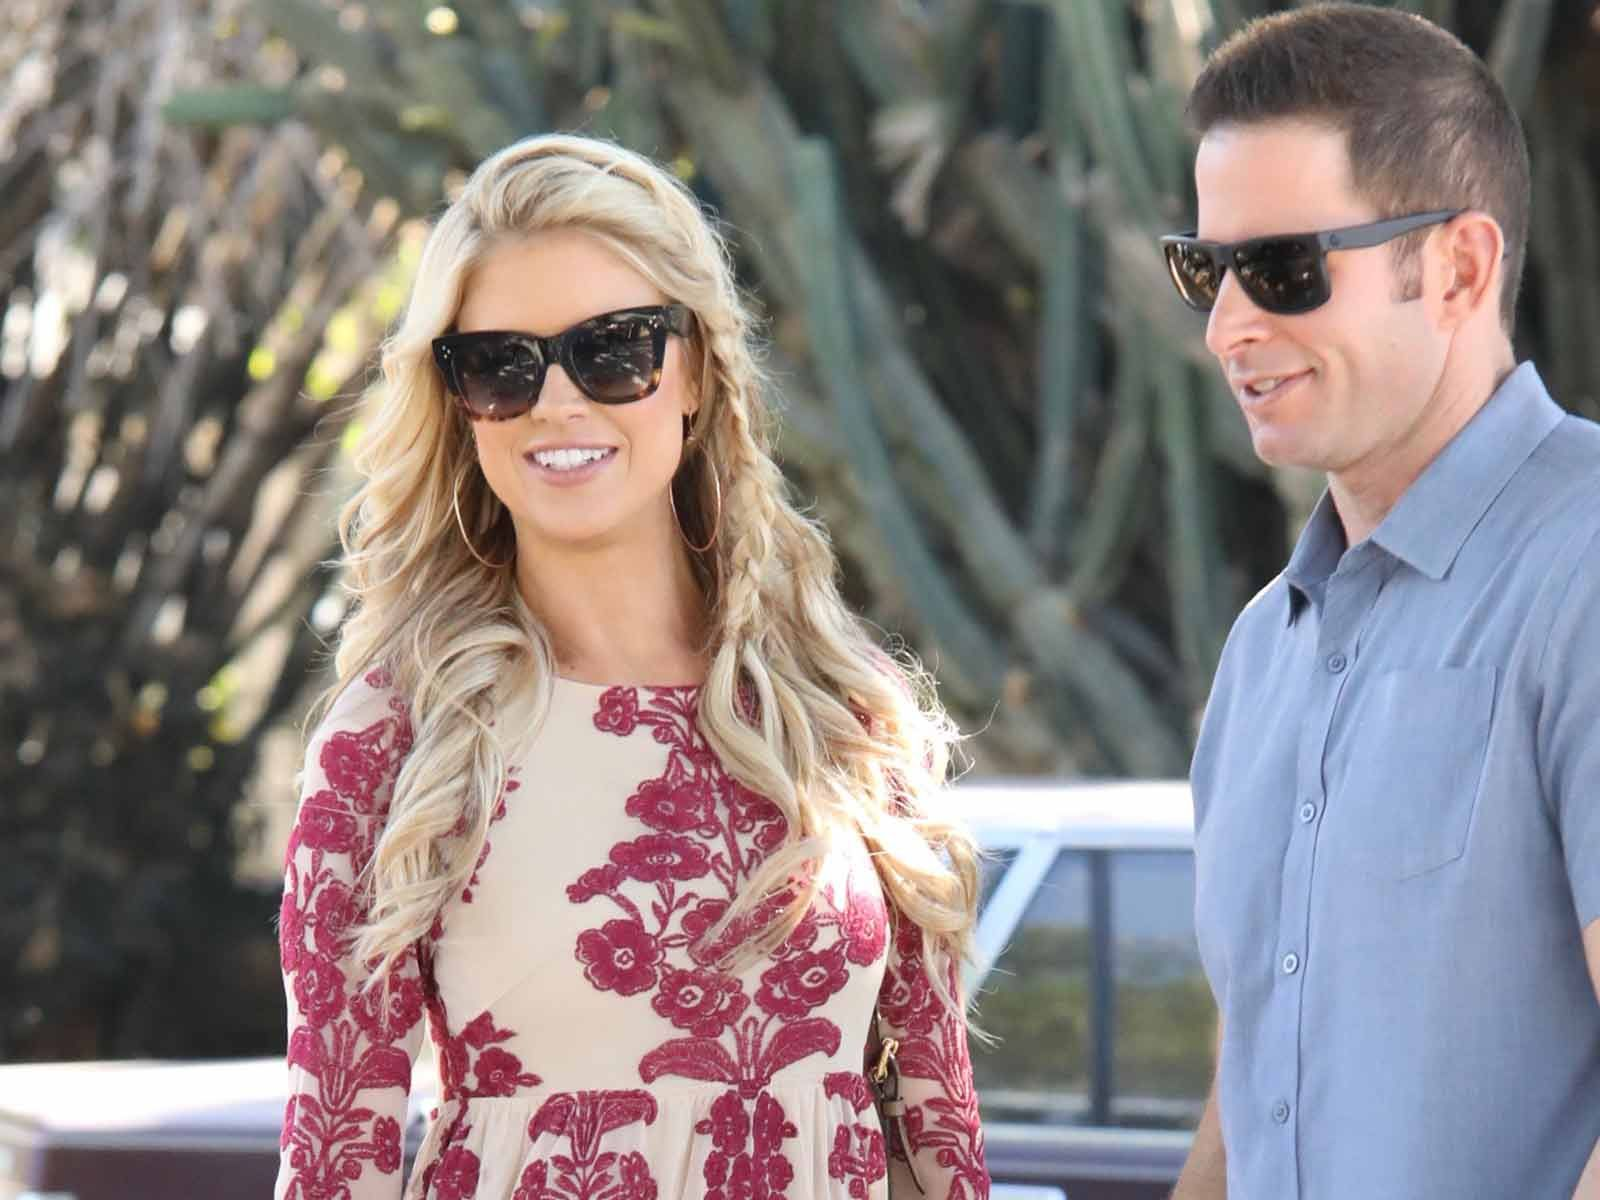 Christina And Tarek El Moussa To Share Custody Of Their Two Children Pay No Spousal Support,Best Kitchen Appliances Brand Uk